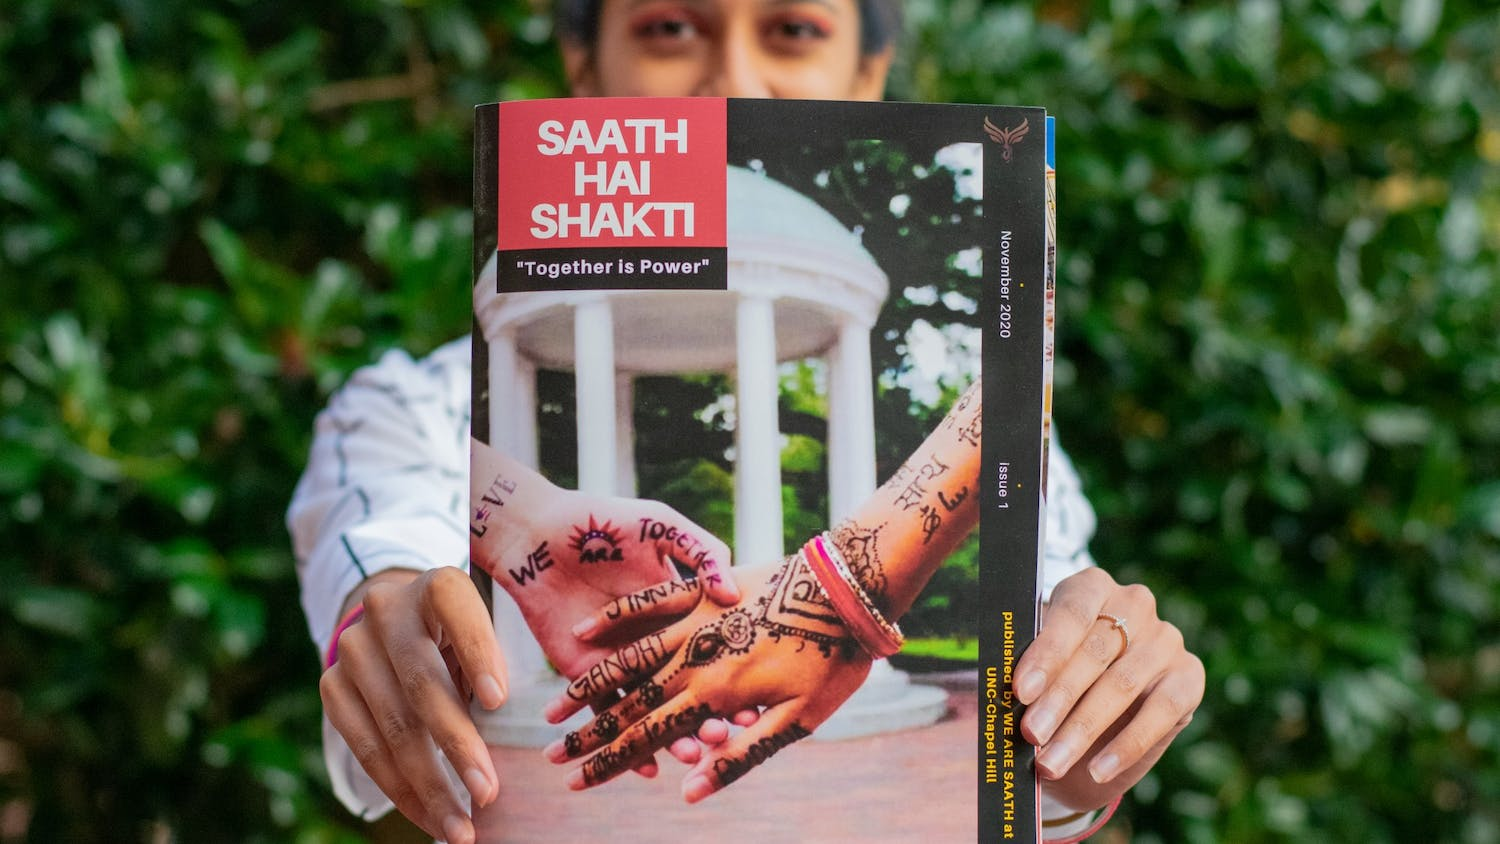 Hrishika Muthukrishnan, a senior neuroscience major and editor-in-chief of the new student-run South Asian publication, SAATH HAI SHAKTI, shows off the front cover of the magazine's first issue on Saturday, Nov. 14, 2020.